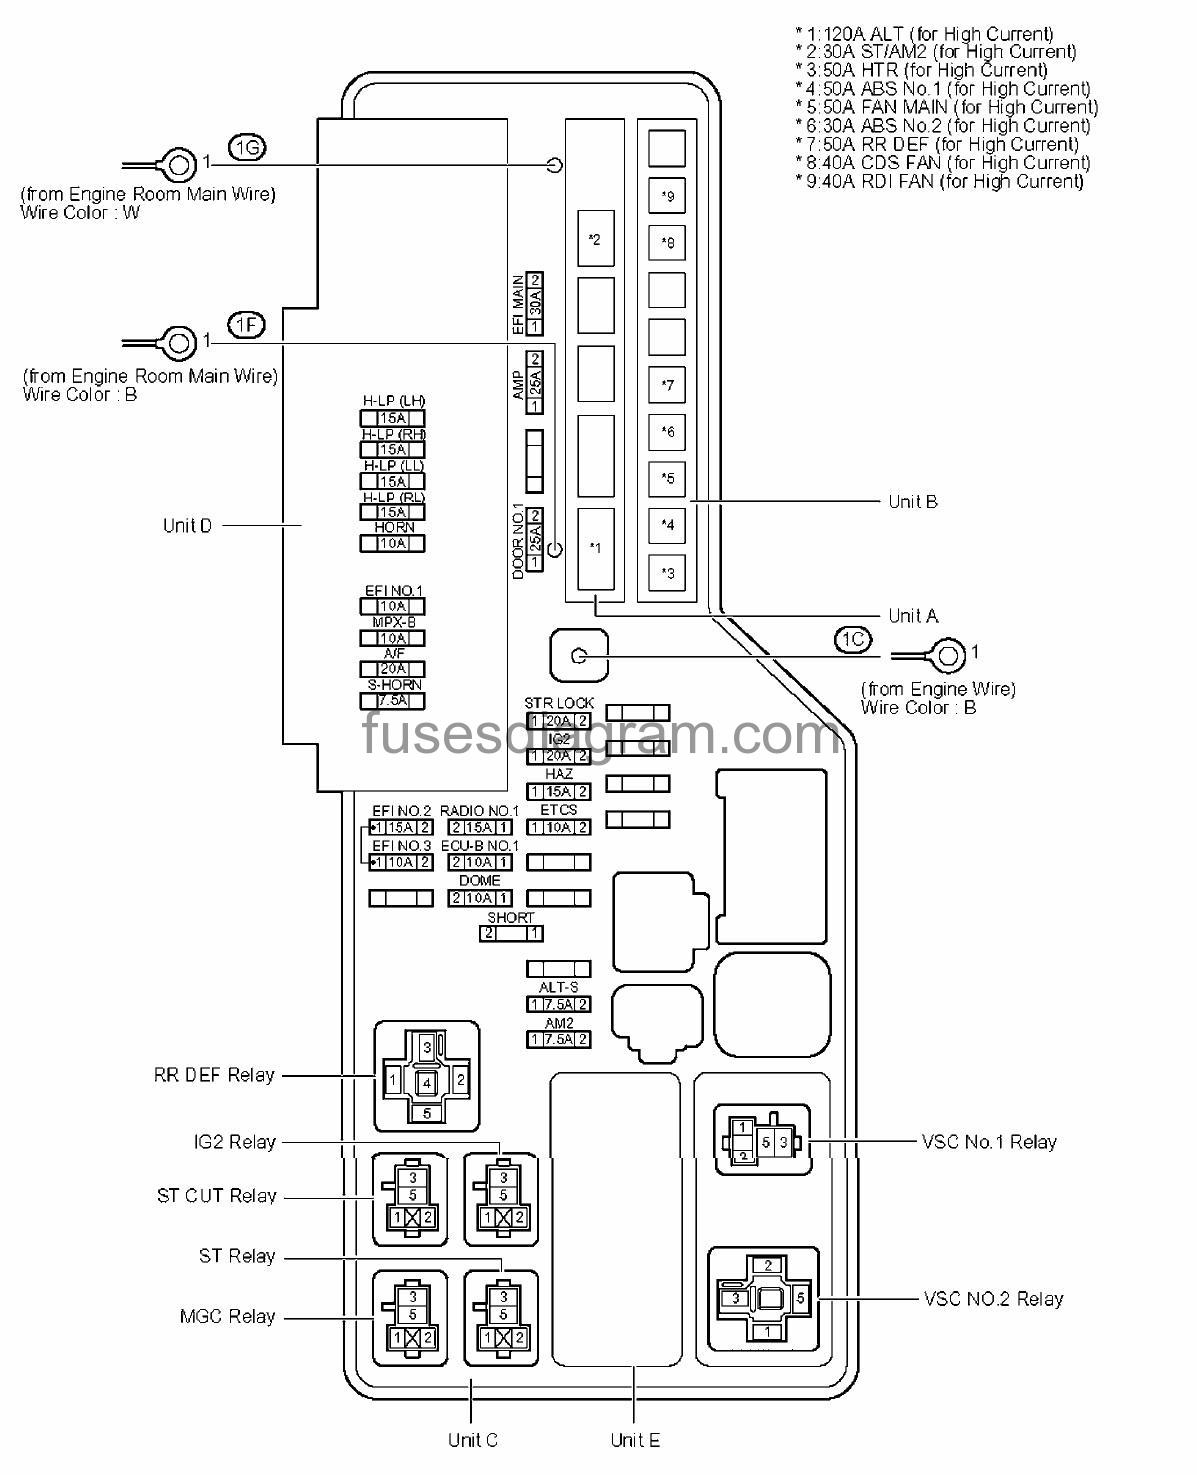 Toyota 5a Engine Wiring Diagram Not Lossing Forklift Library Rh 61 Codingcommunity De Pcb 82 Celica